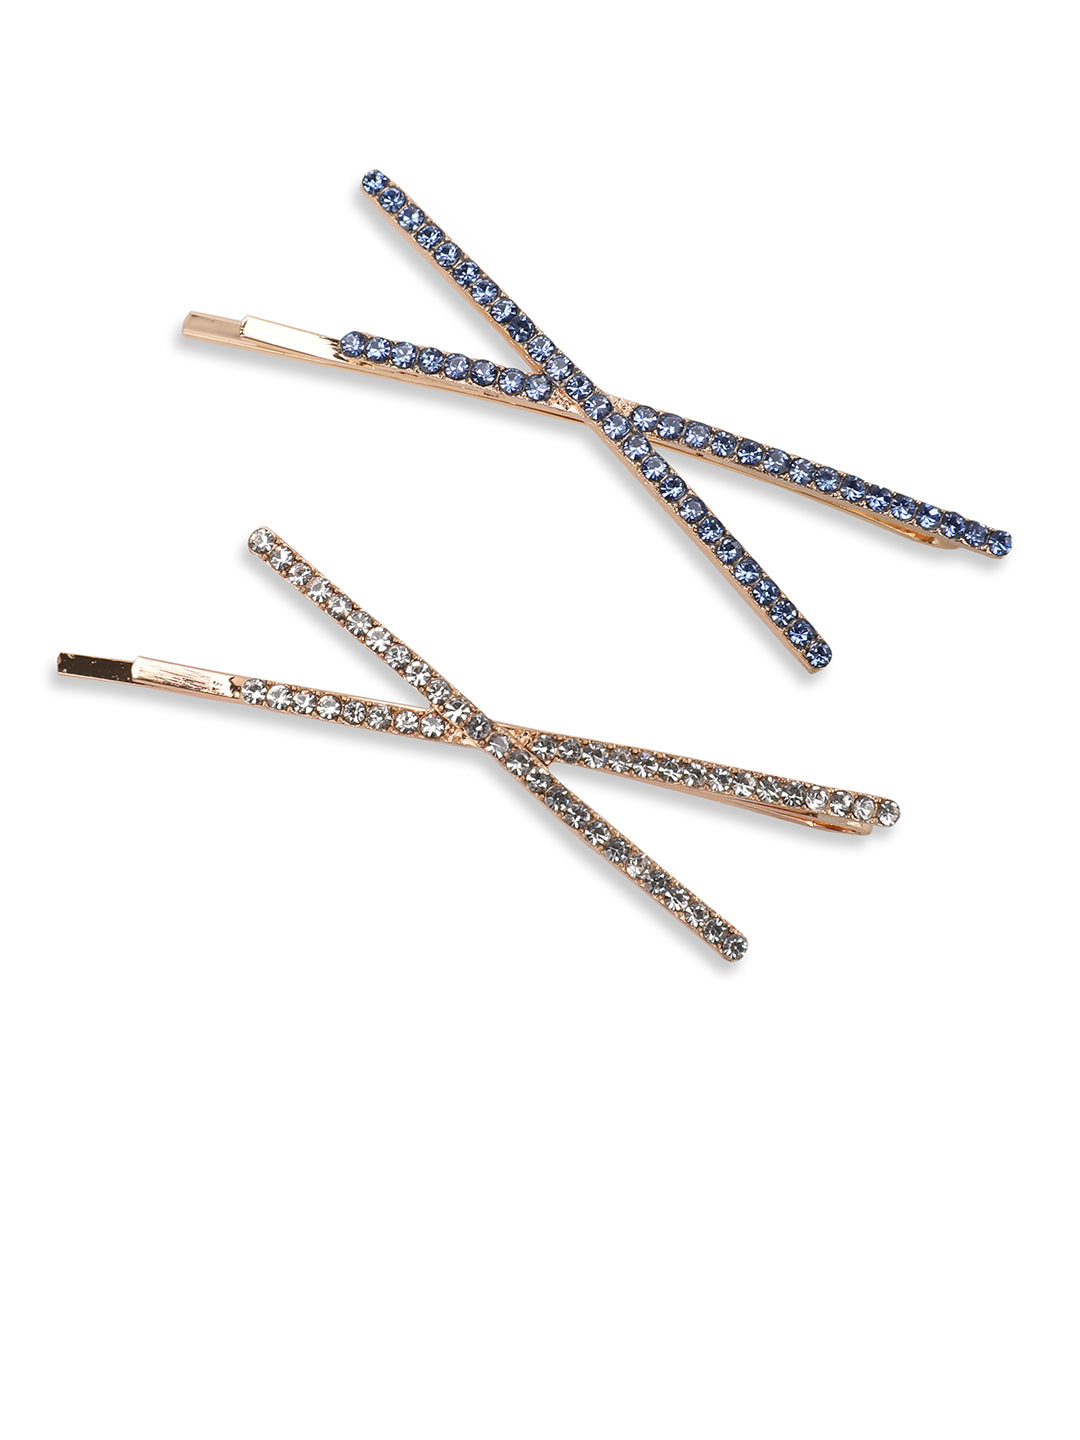 SPARKLE & STYLISH HAIR PINS